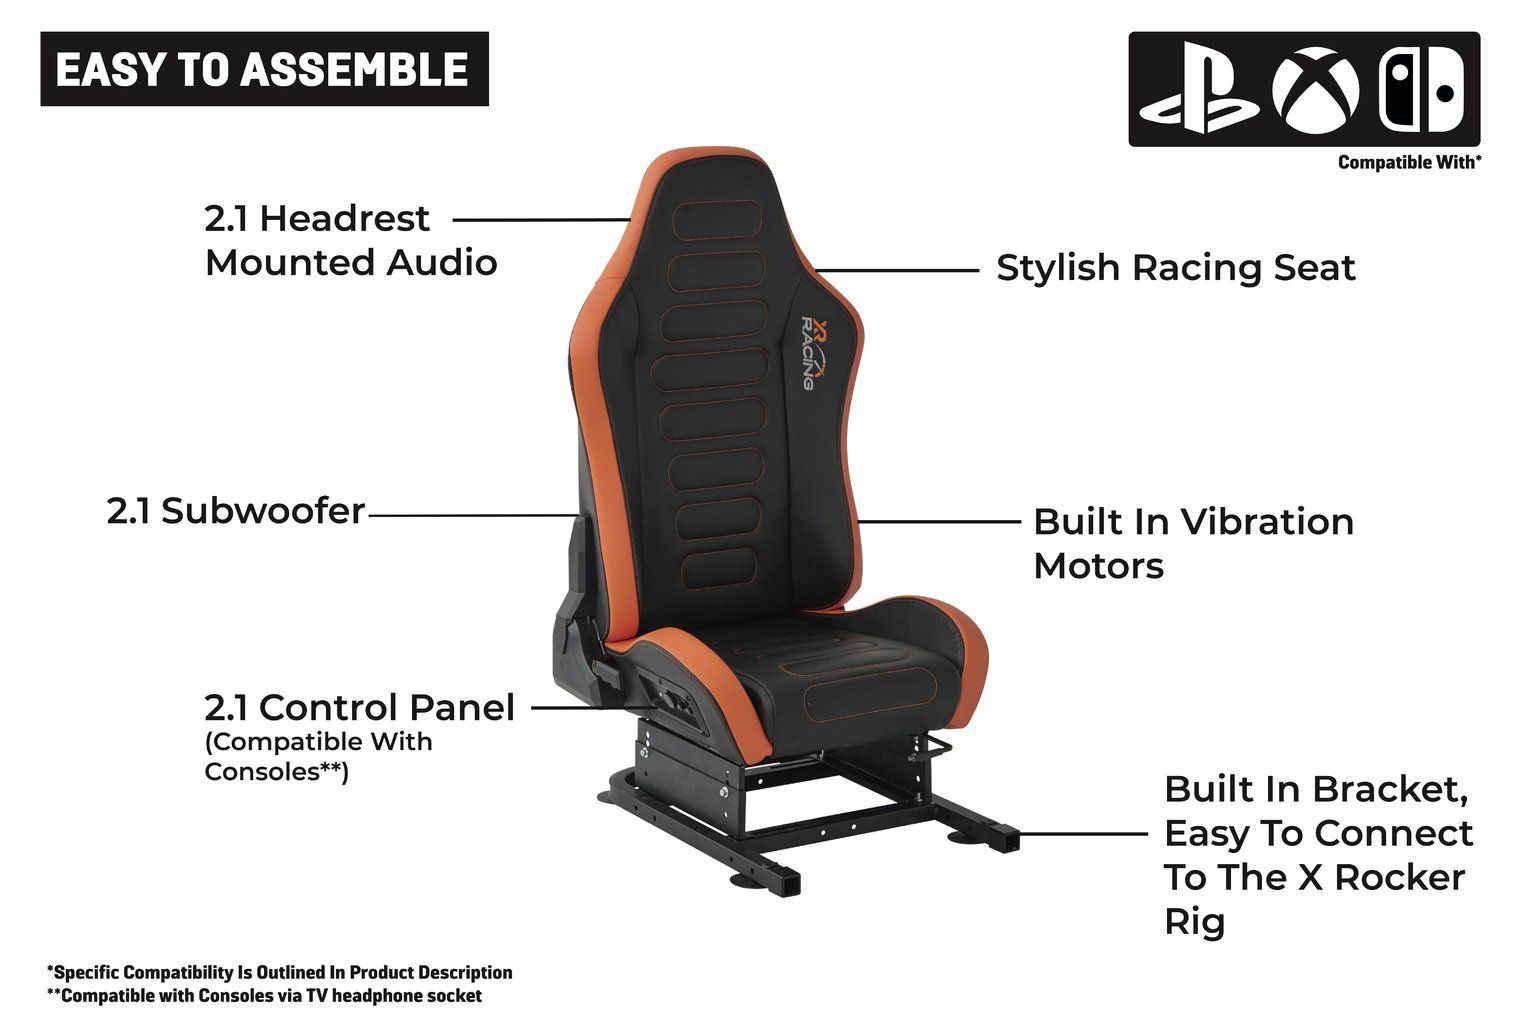 Buy XRocker XR Drift Racing 2in1 Gaming Chair & Bracket